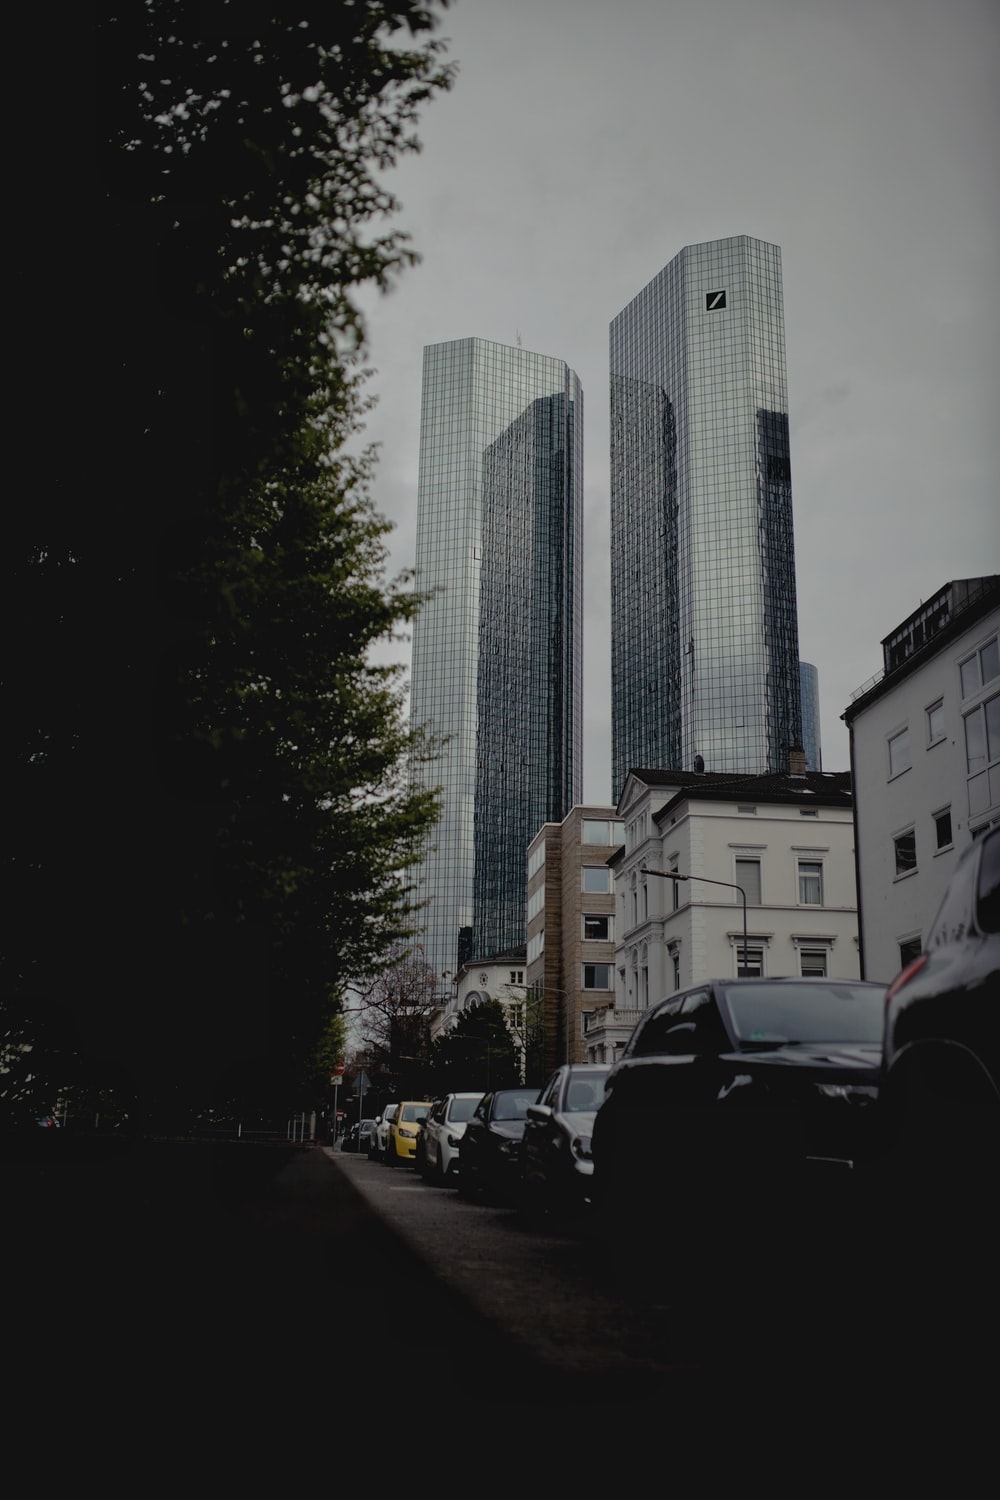 cars parked near high rise building during daytime